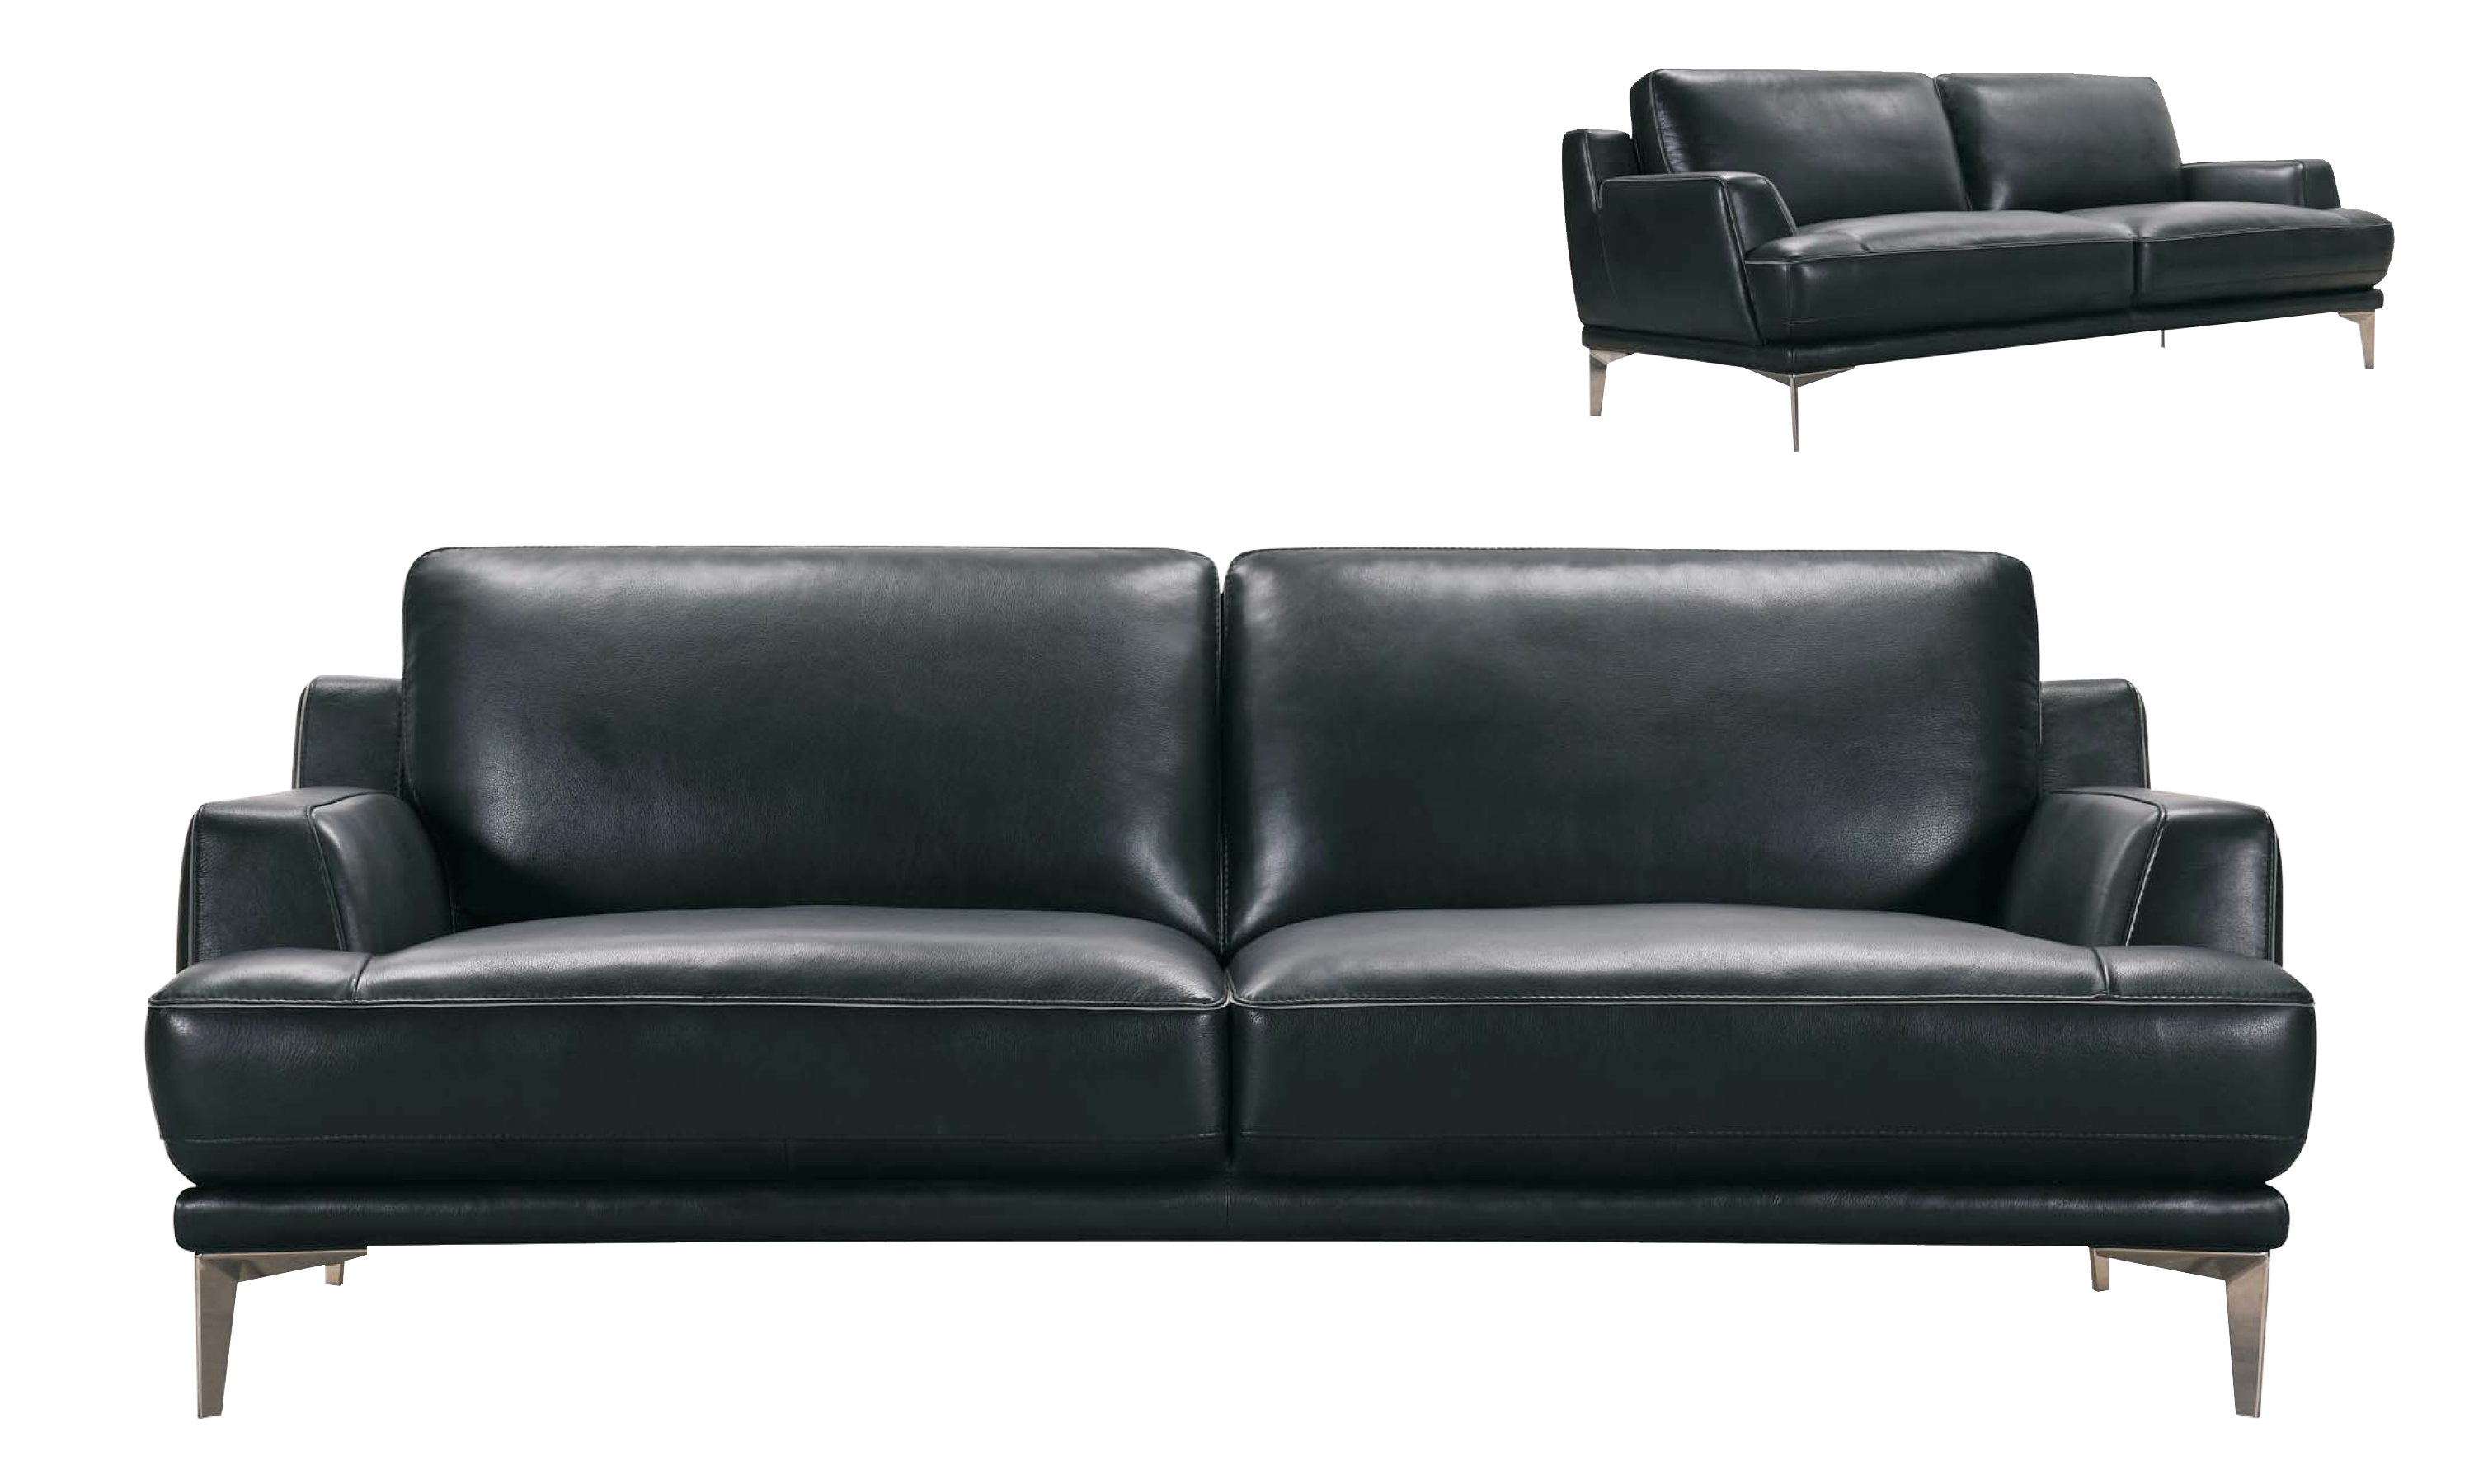 Janice Description The Janice Sofa Is Inspired By Stylish City